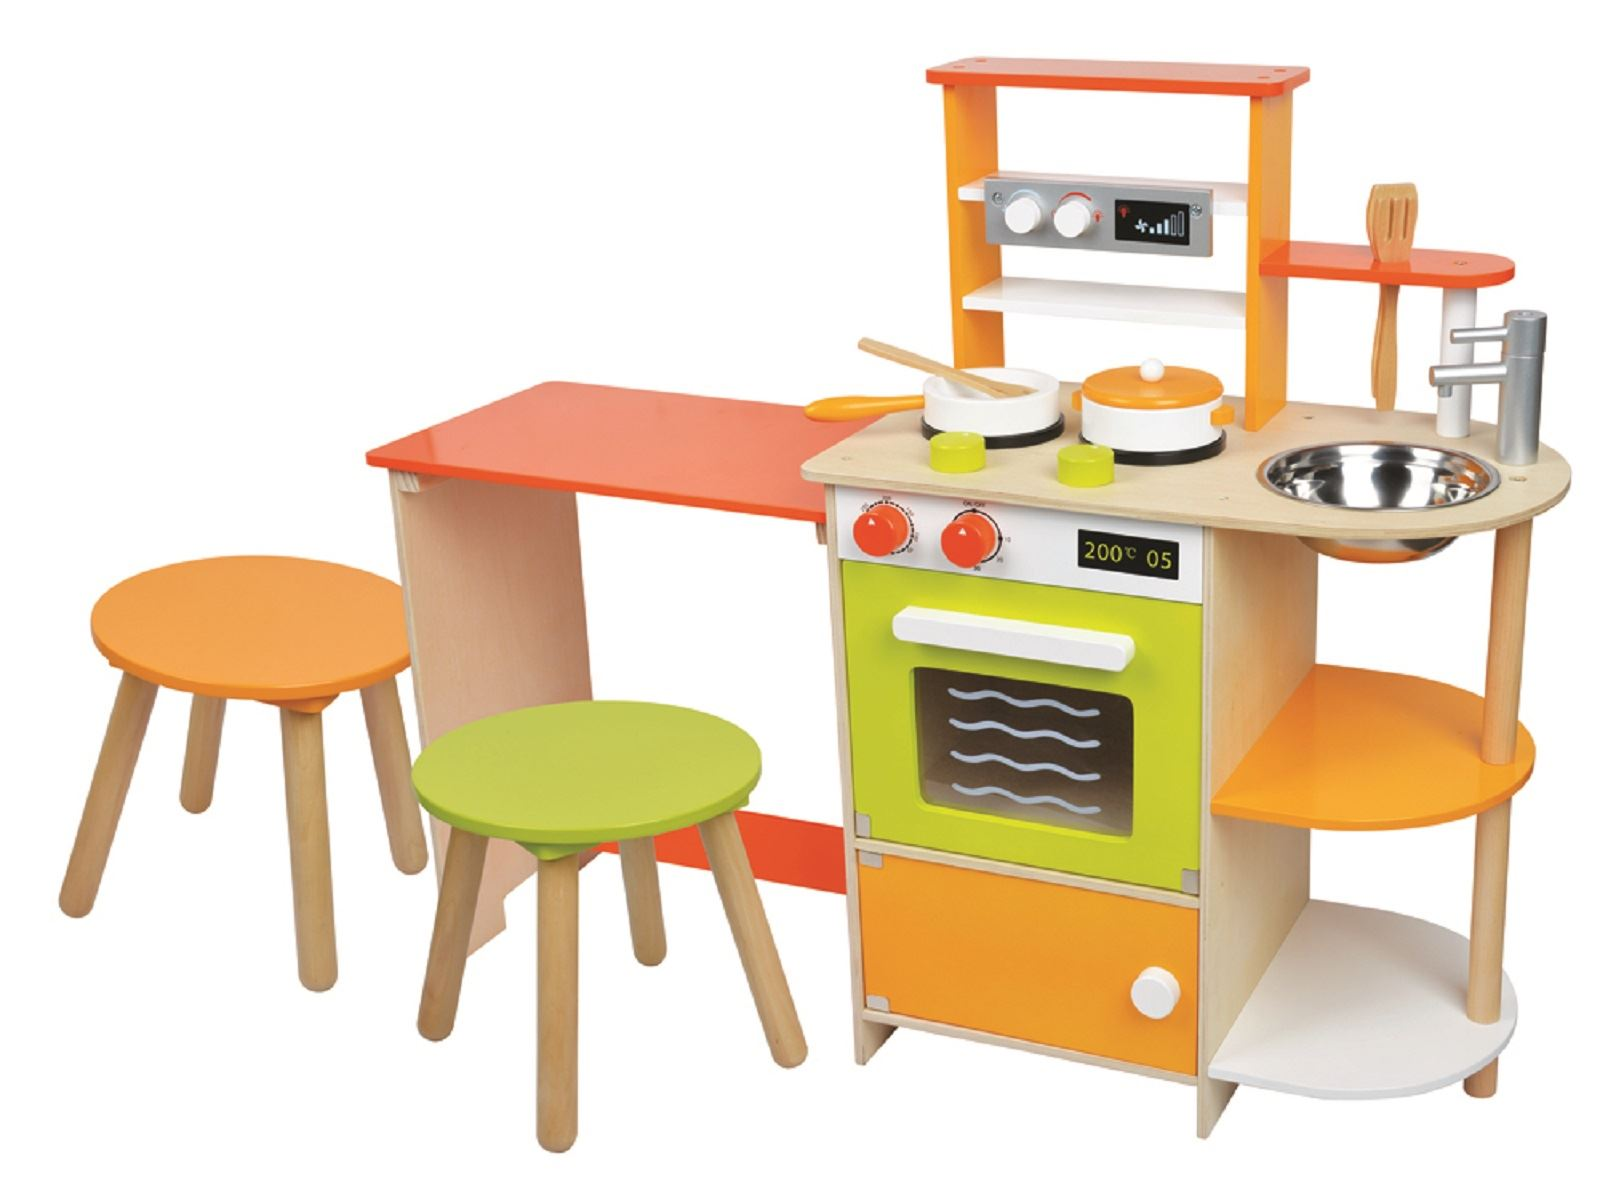 Lelin wooden childrens 2 in 1 pretend play kitchen and - Childrens wooden play kitchen ...